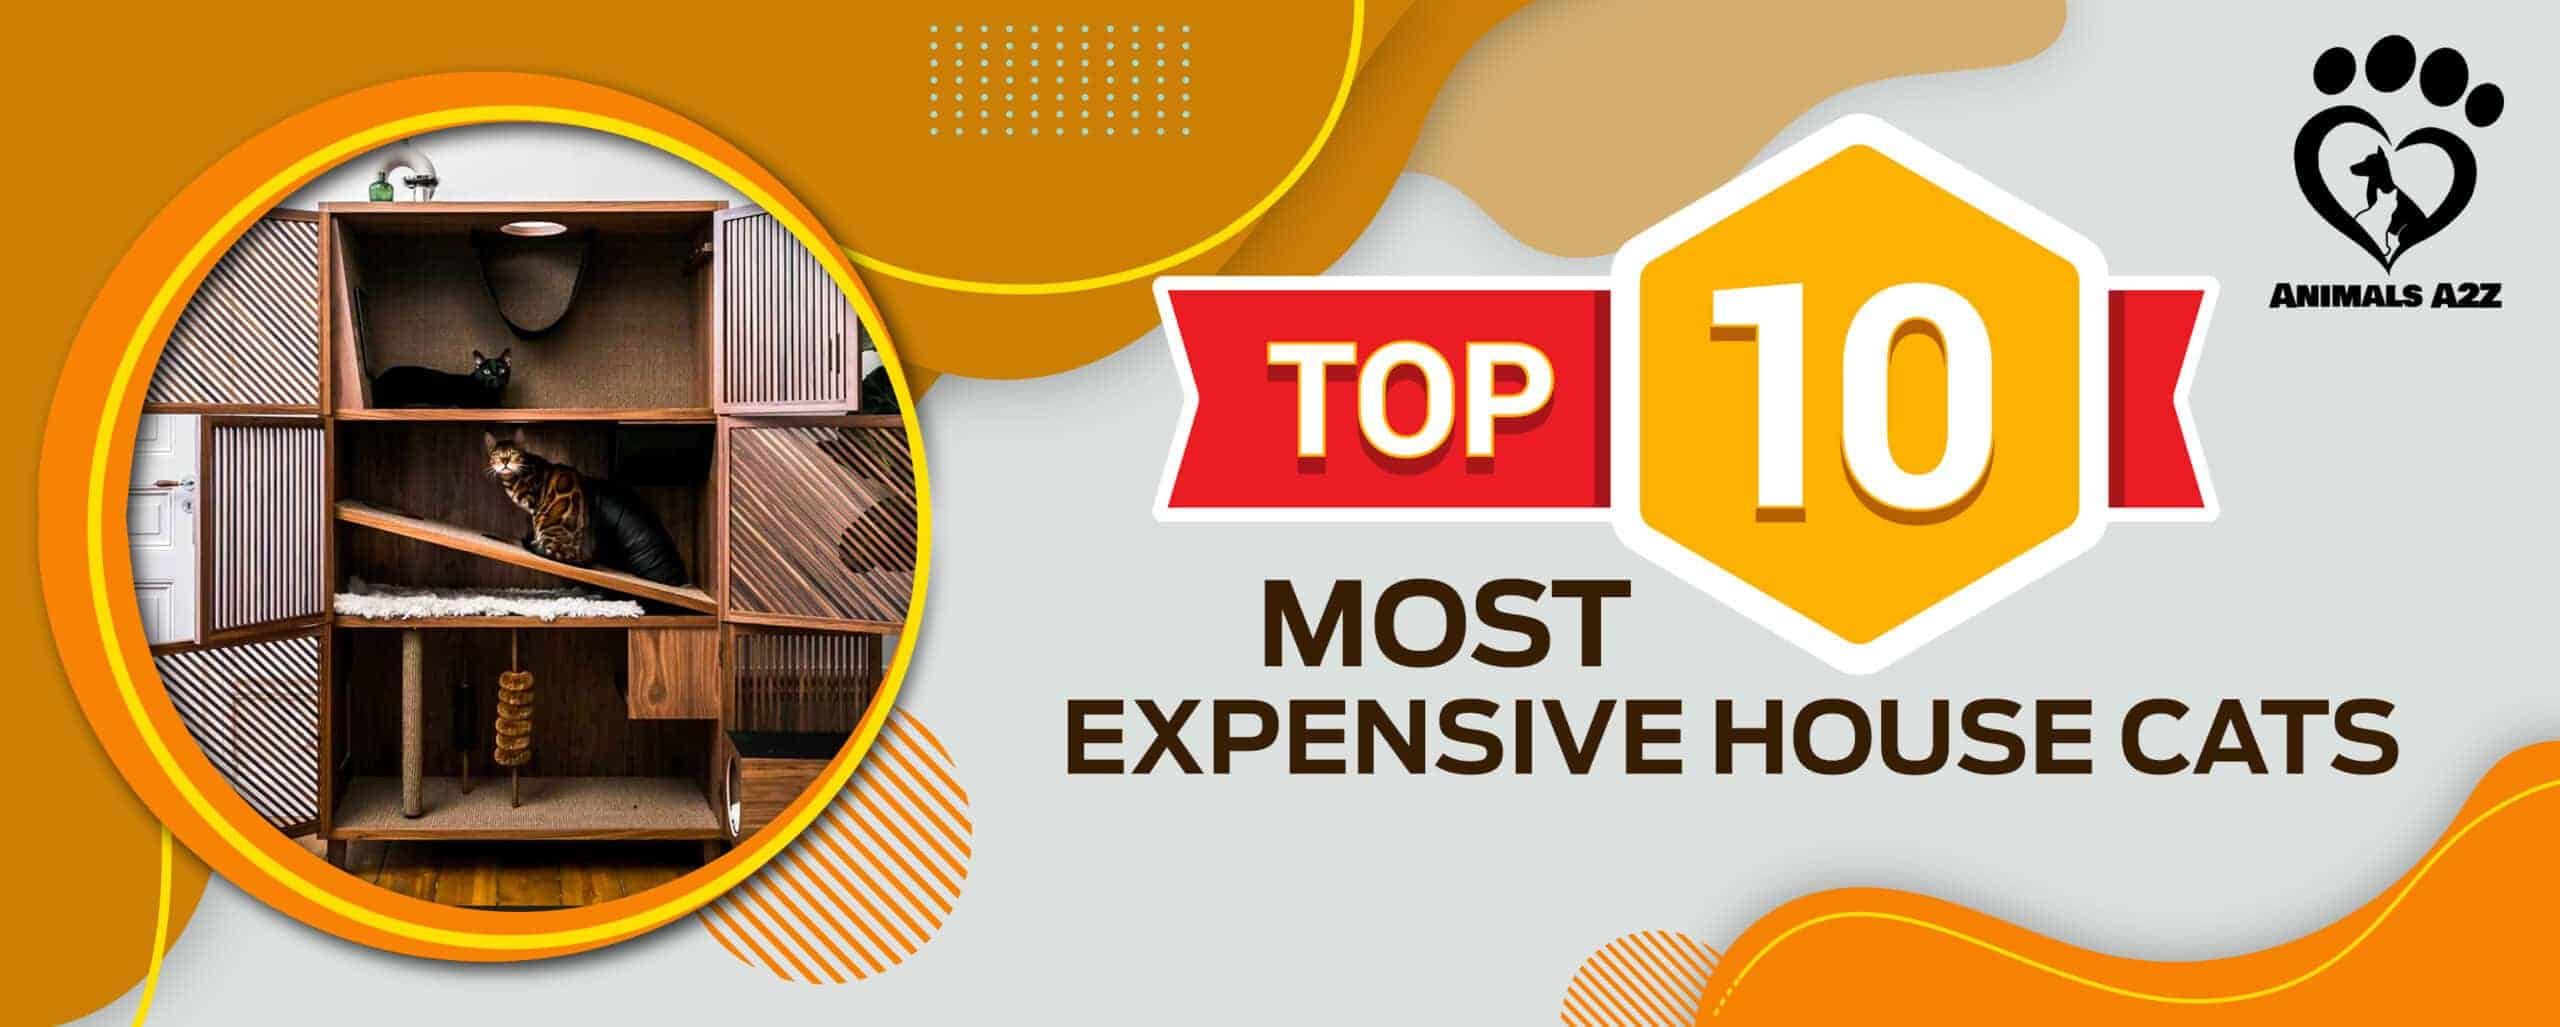 top 10 most expensive house cats